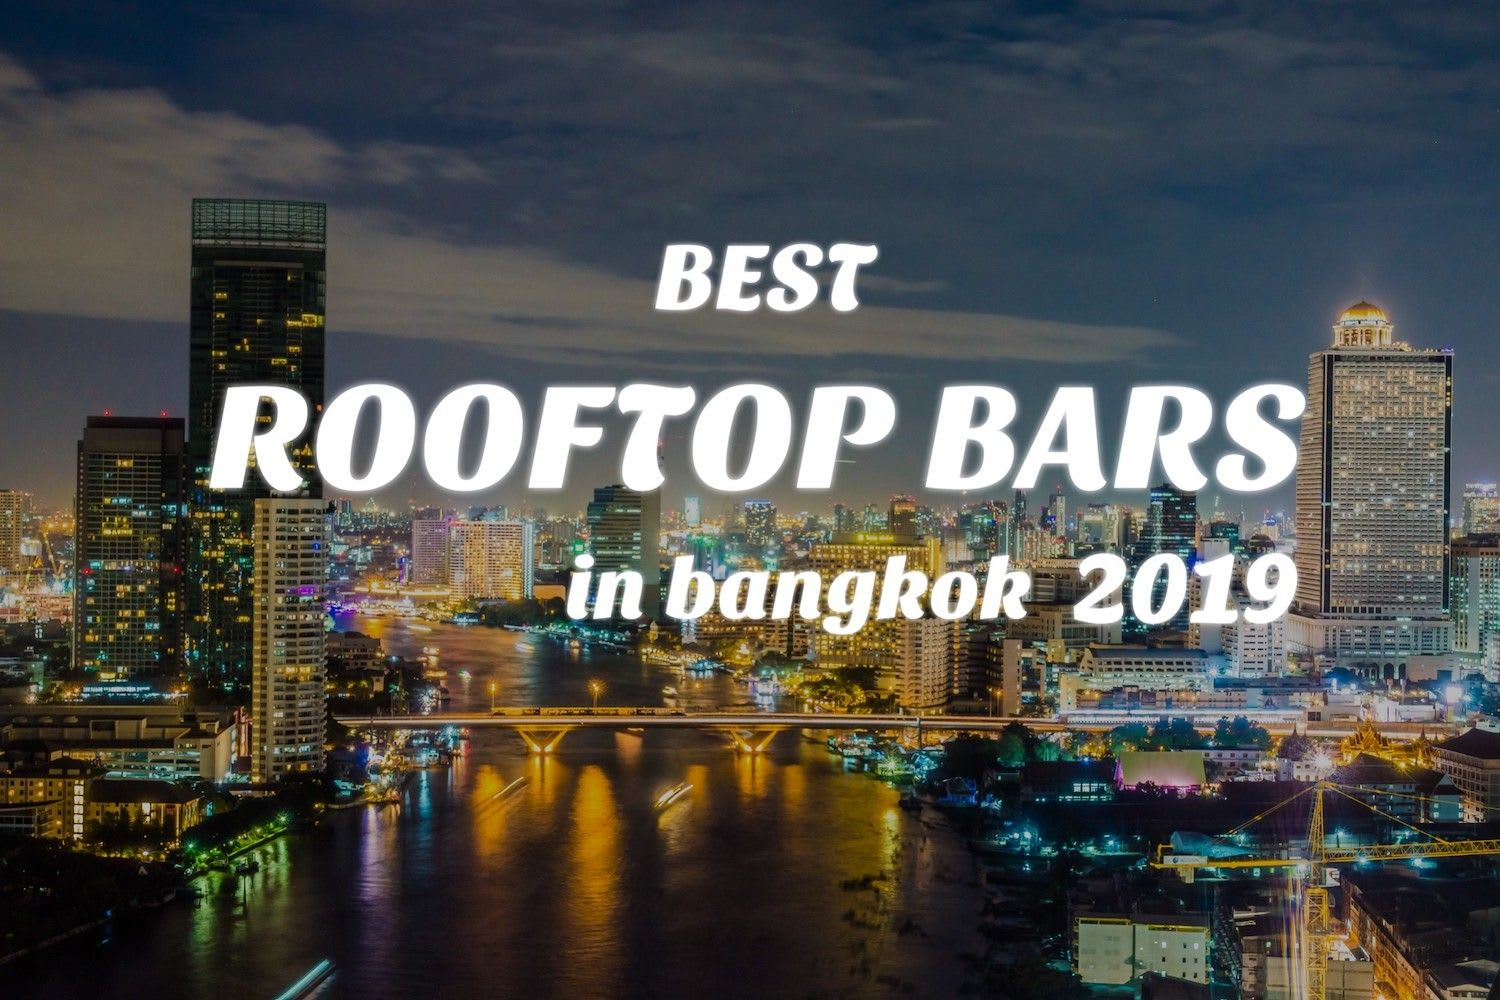 10 Best Rooftop Bars in Bangkok 2019